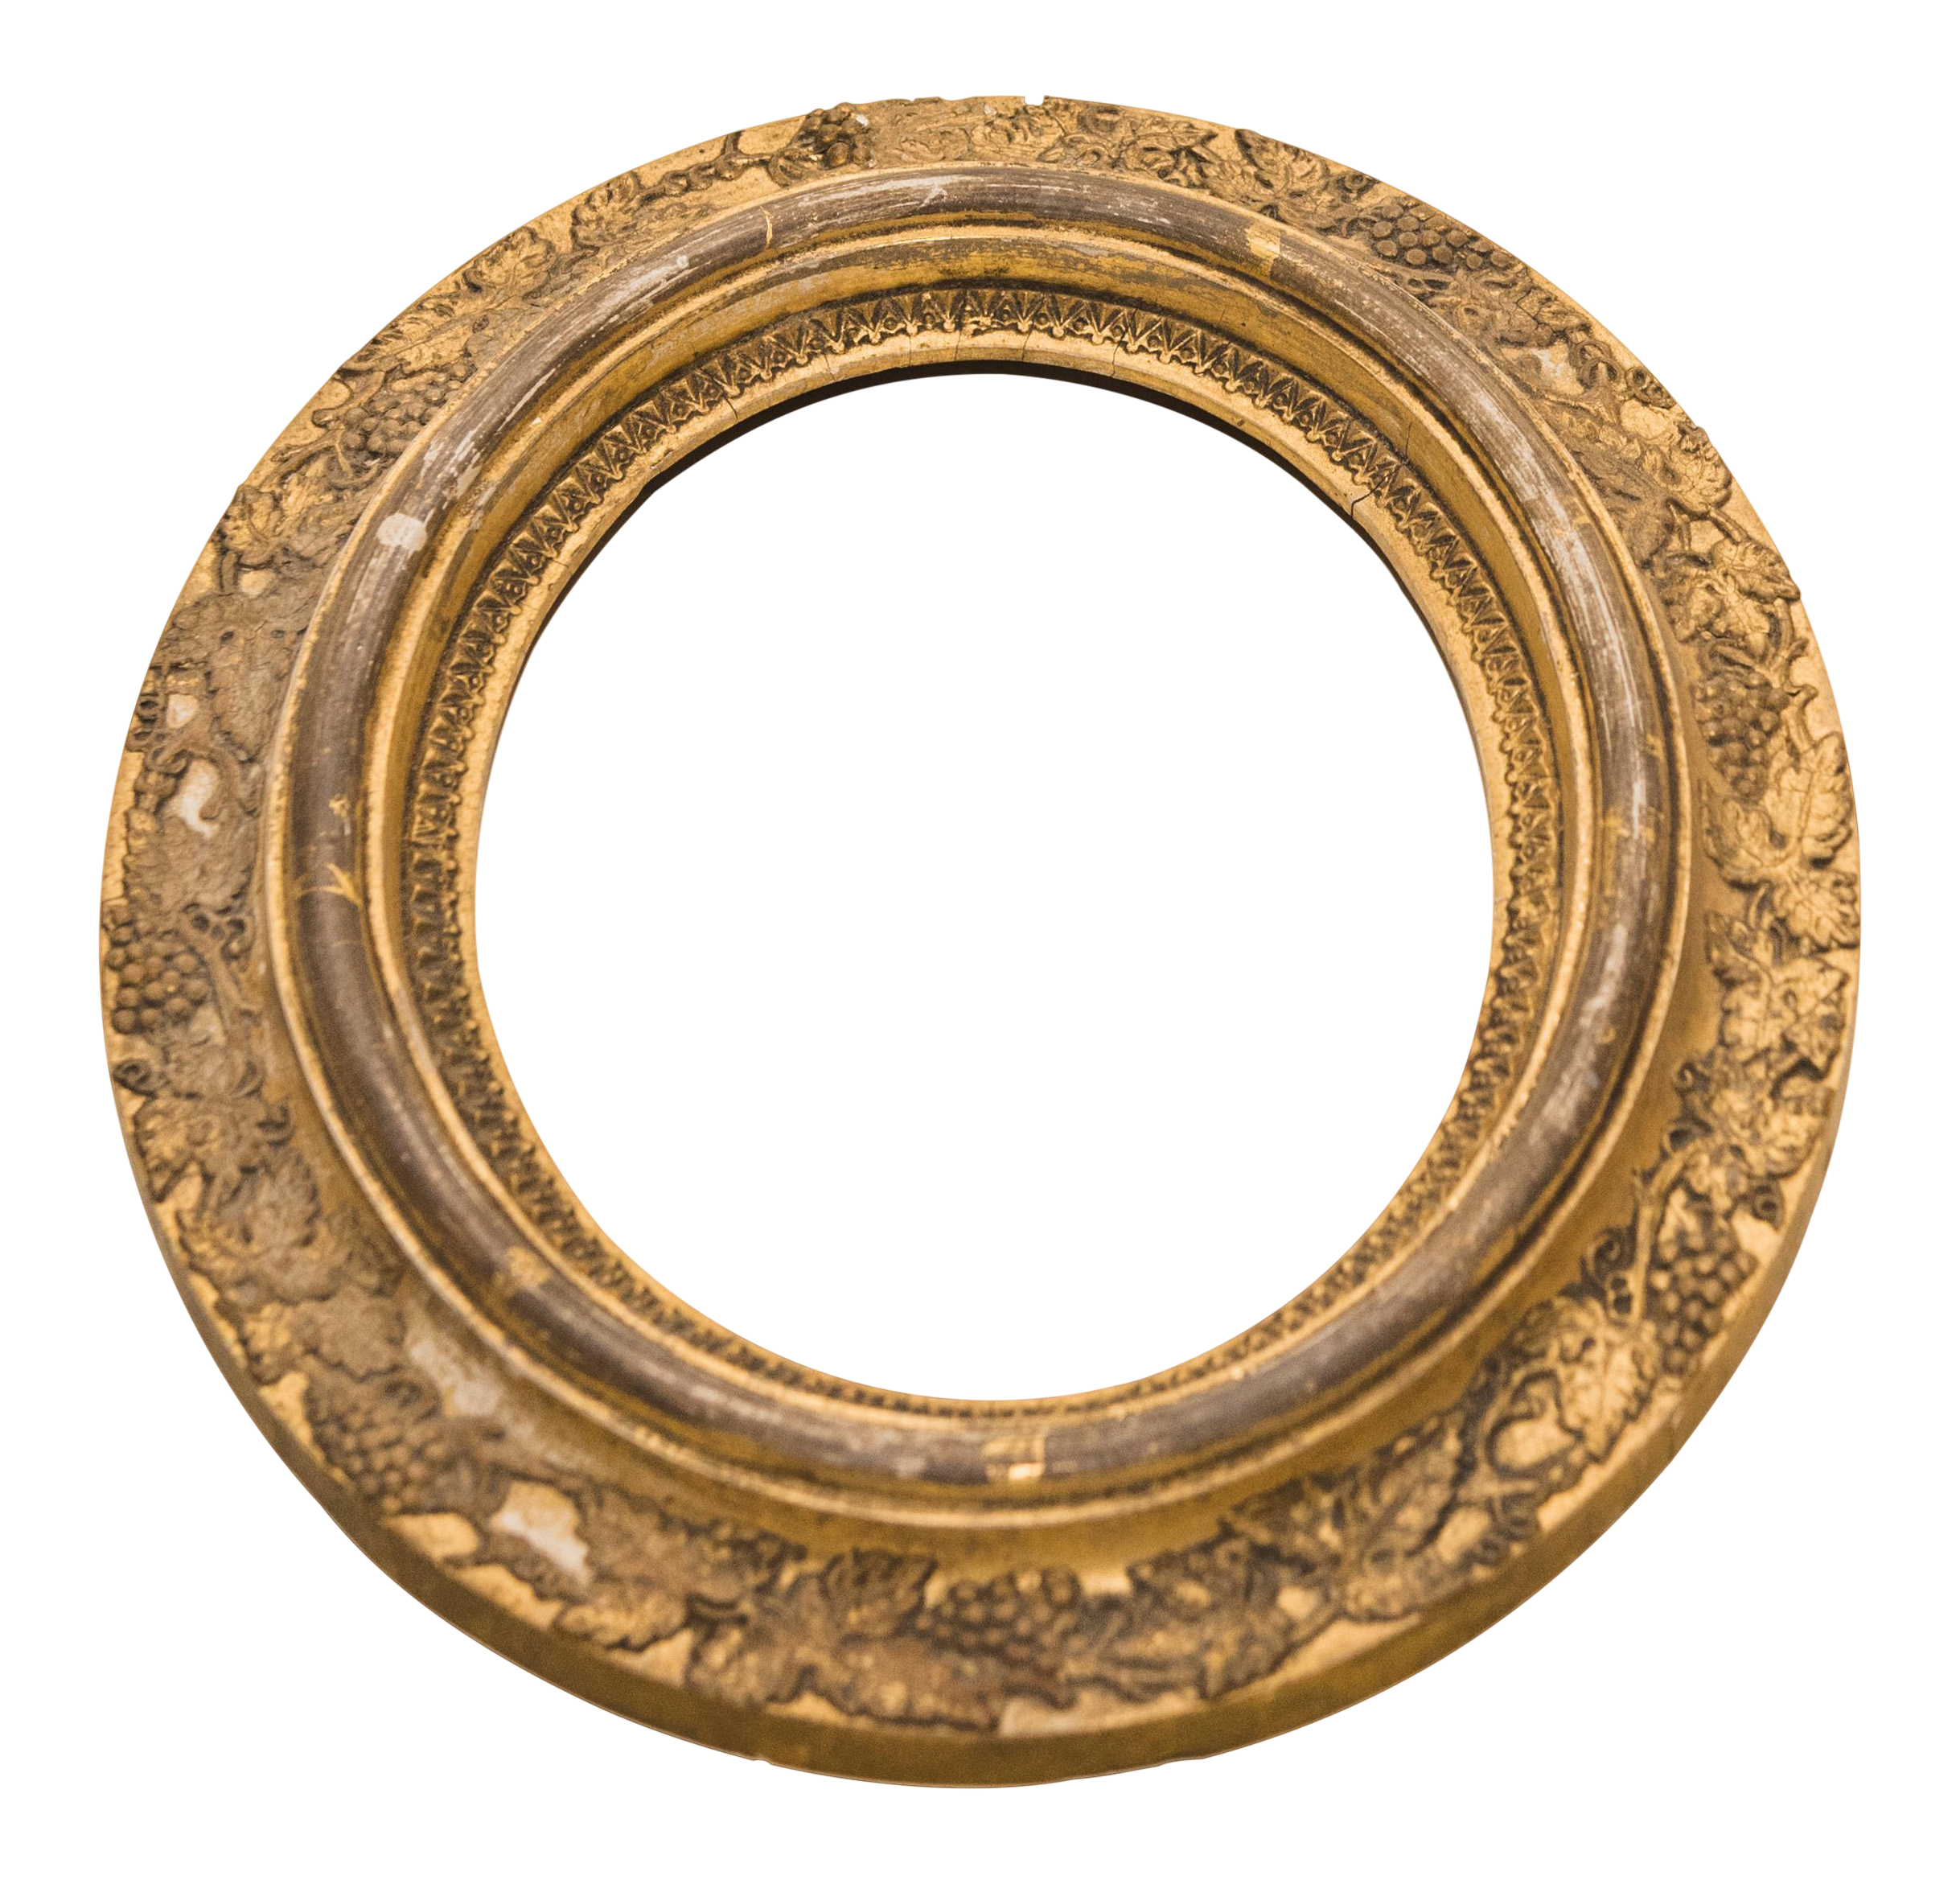 Gold Oval Frame with Carved Grapes | Chairish